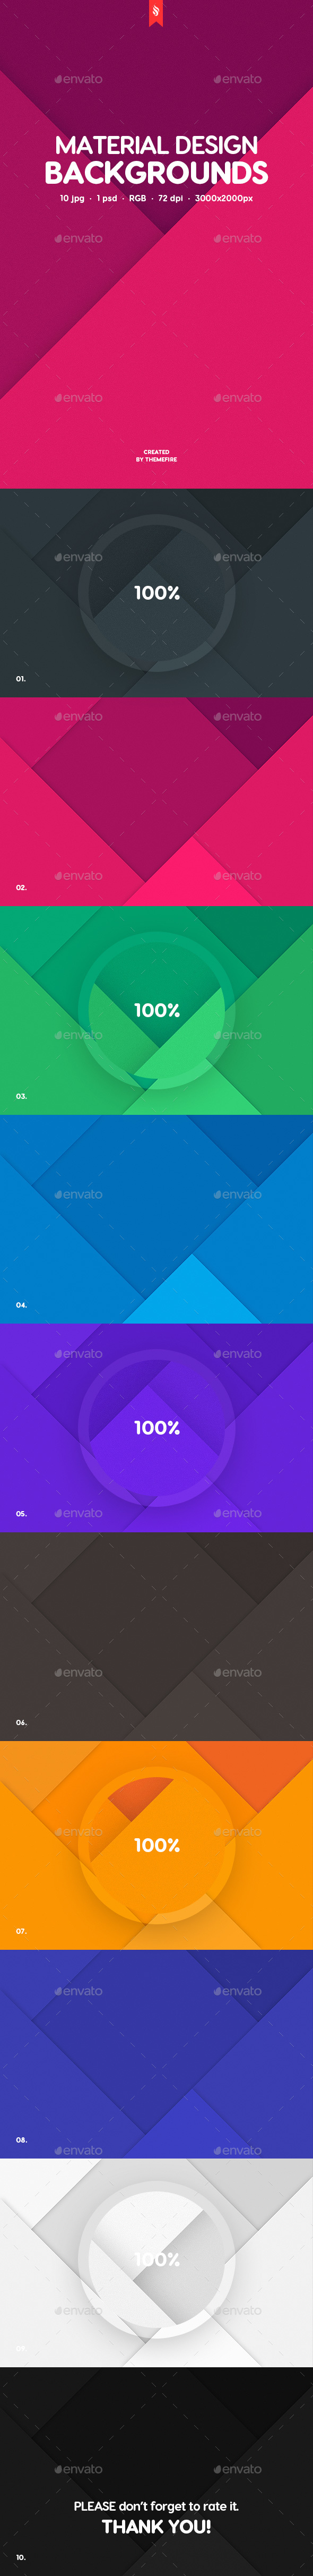 10 Material Design Backgrounds - Patterns Backgrounds